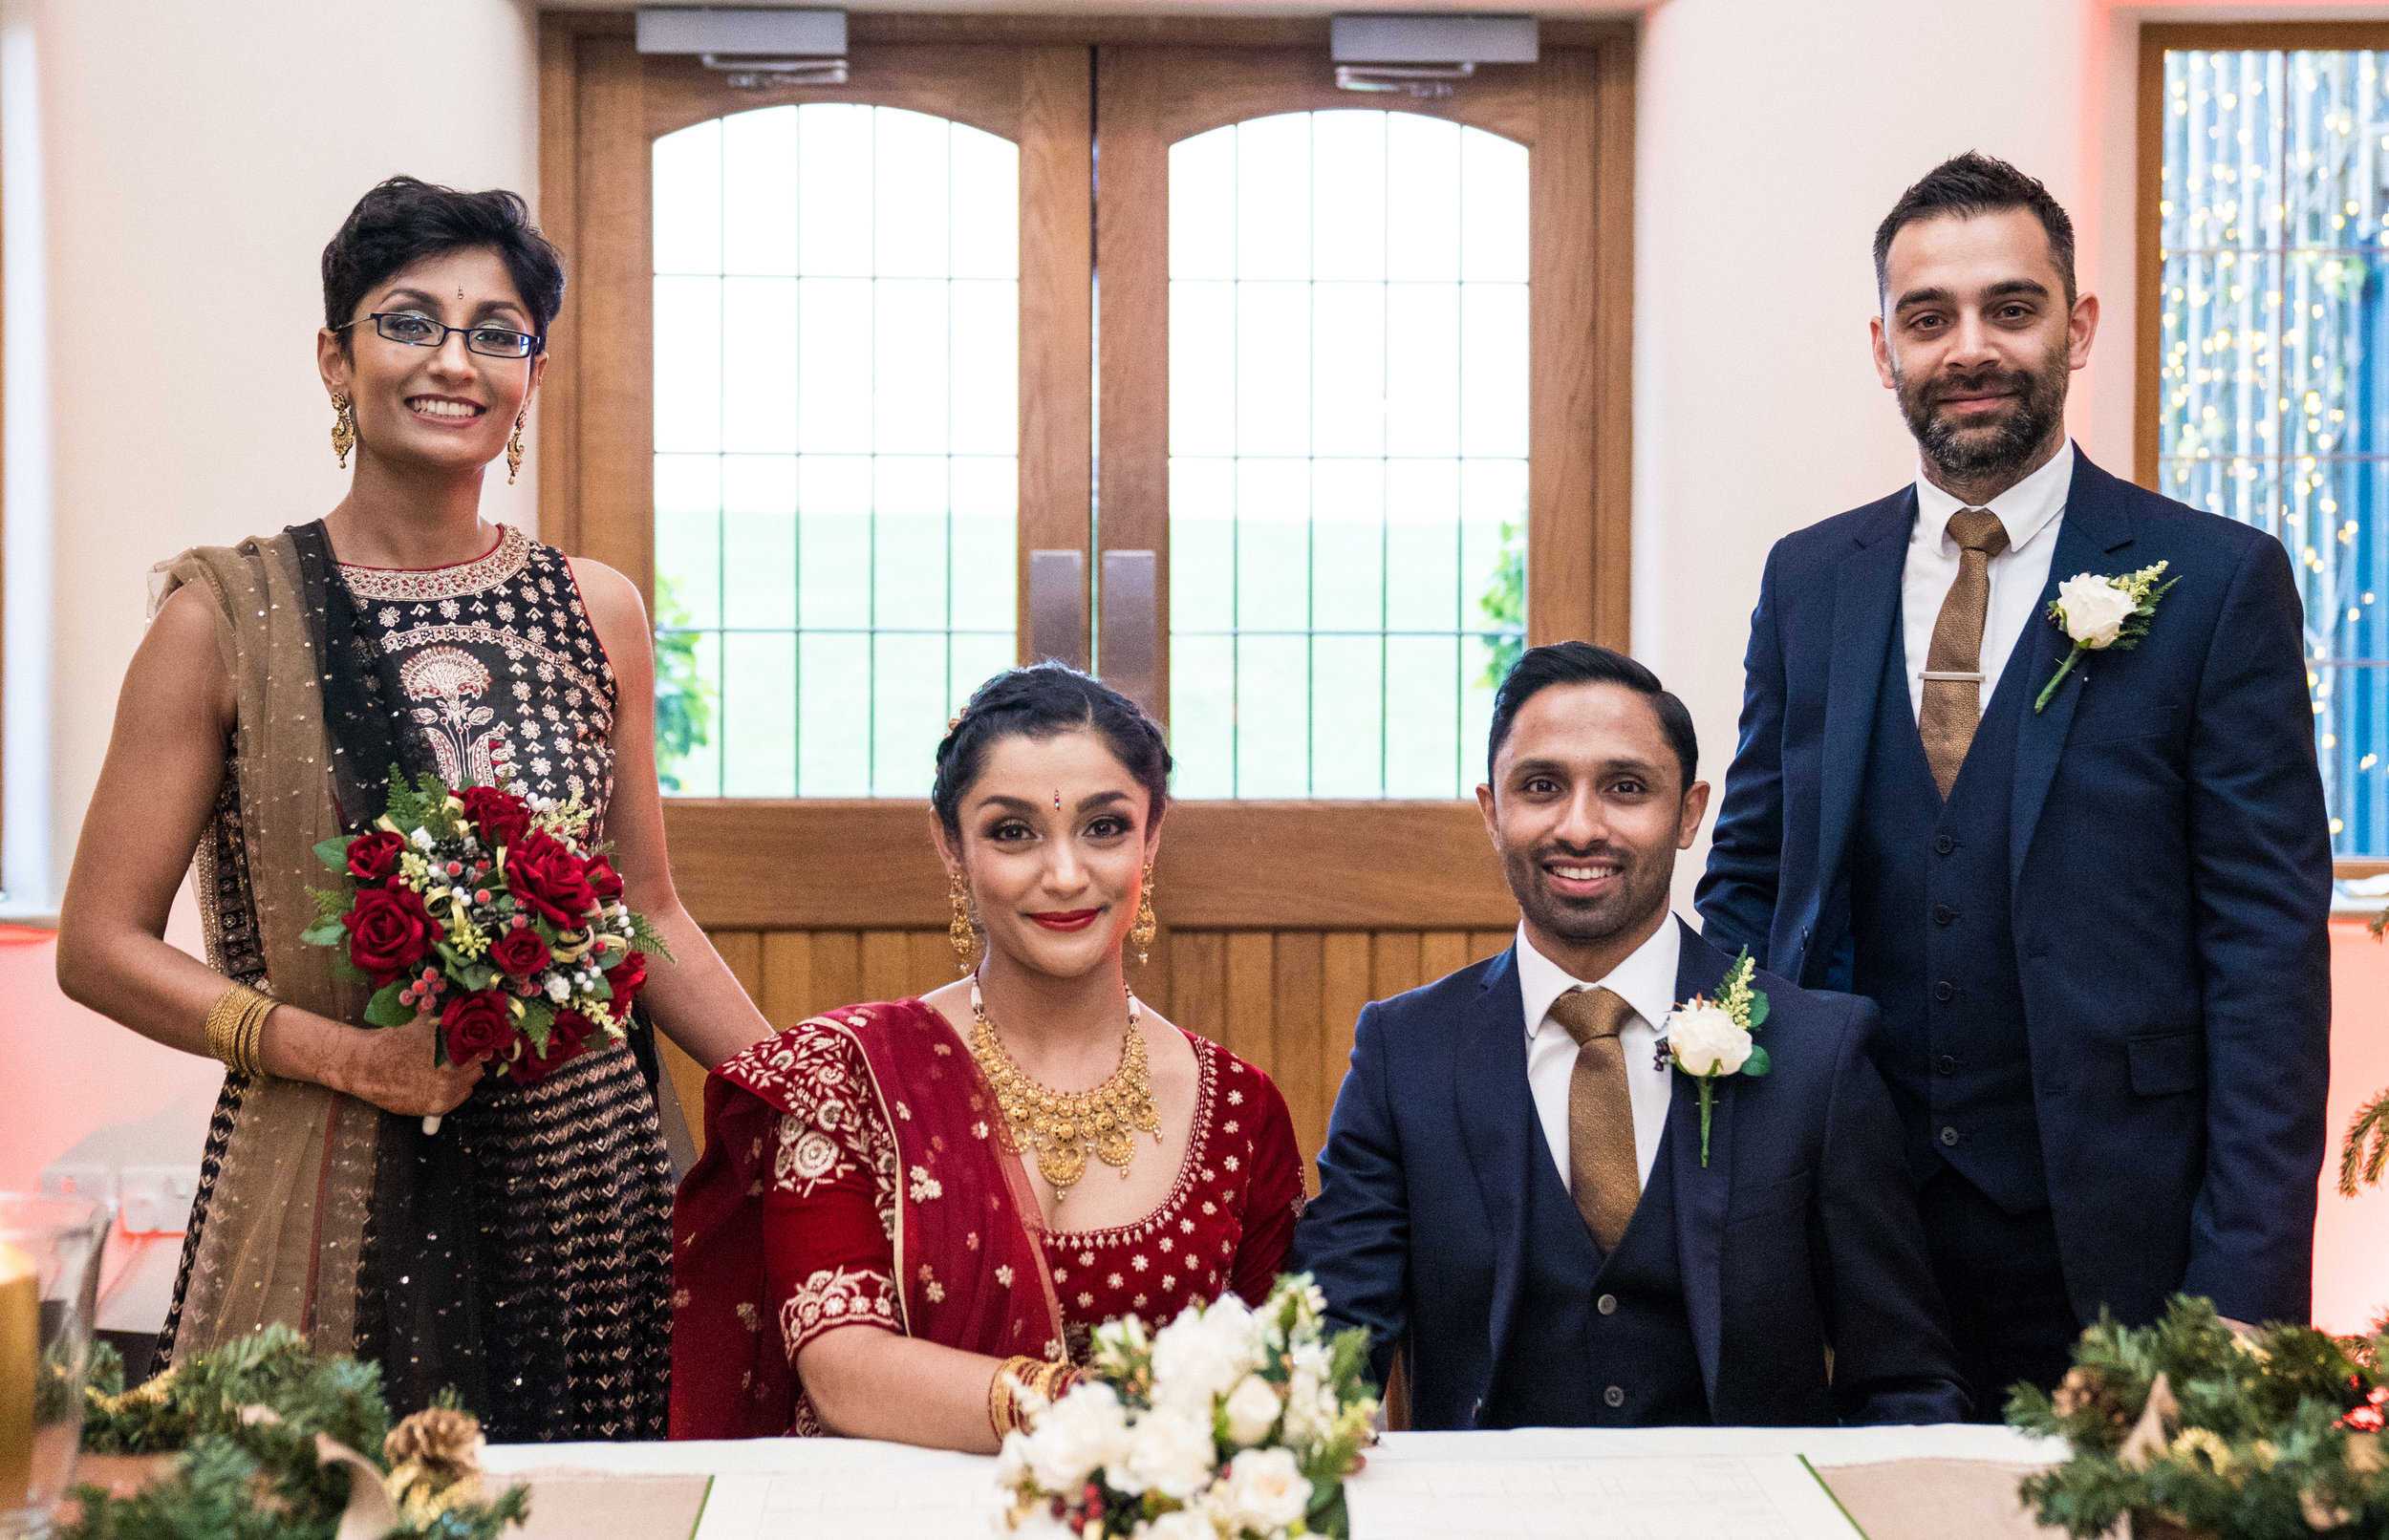 christmas-winter-wedding-photography-videography-heaton-house-41